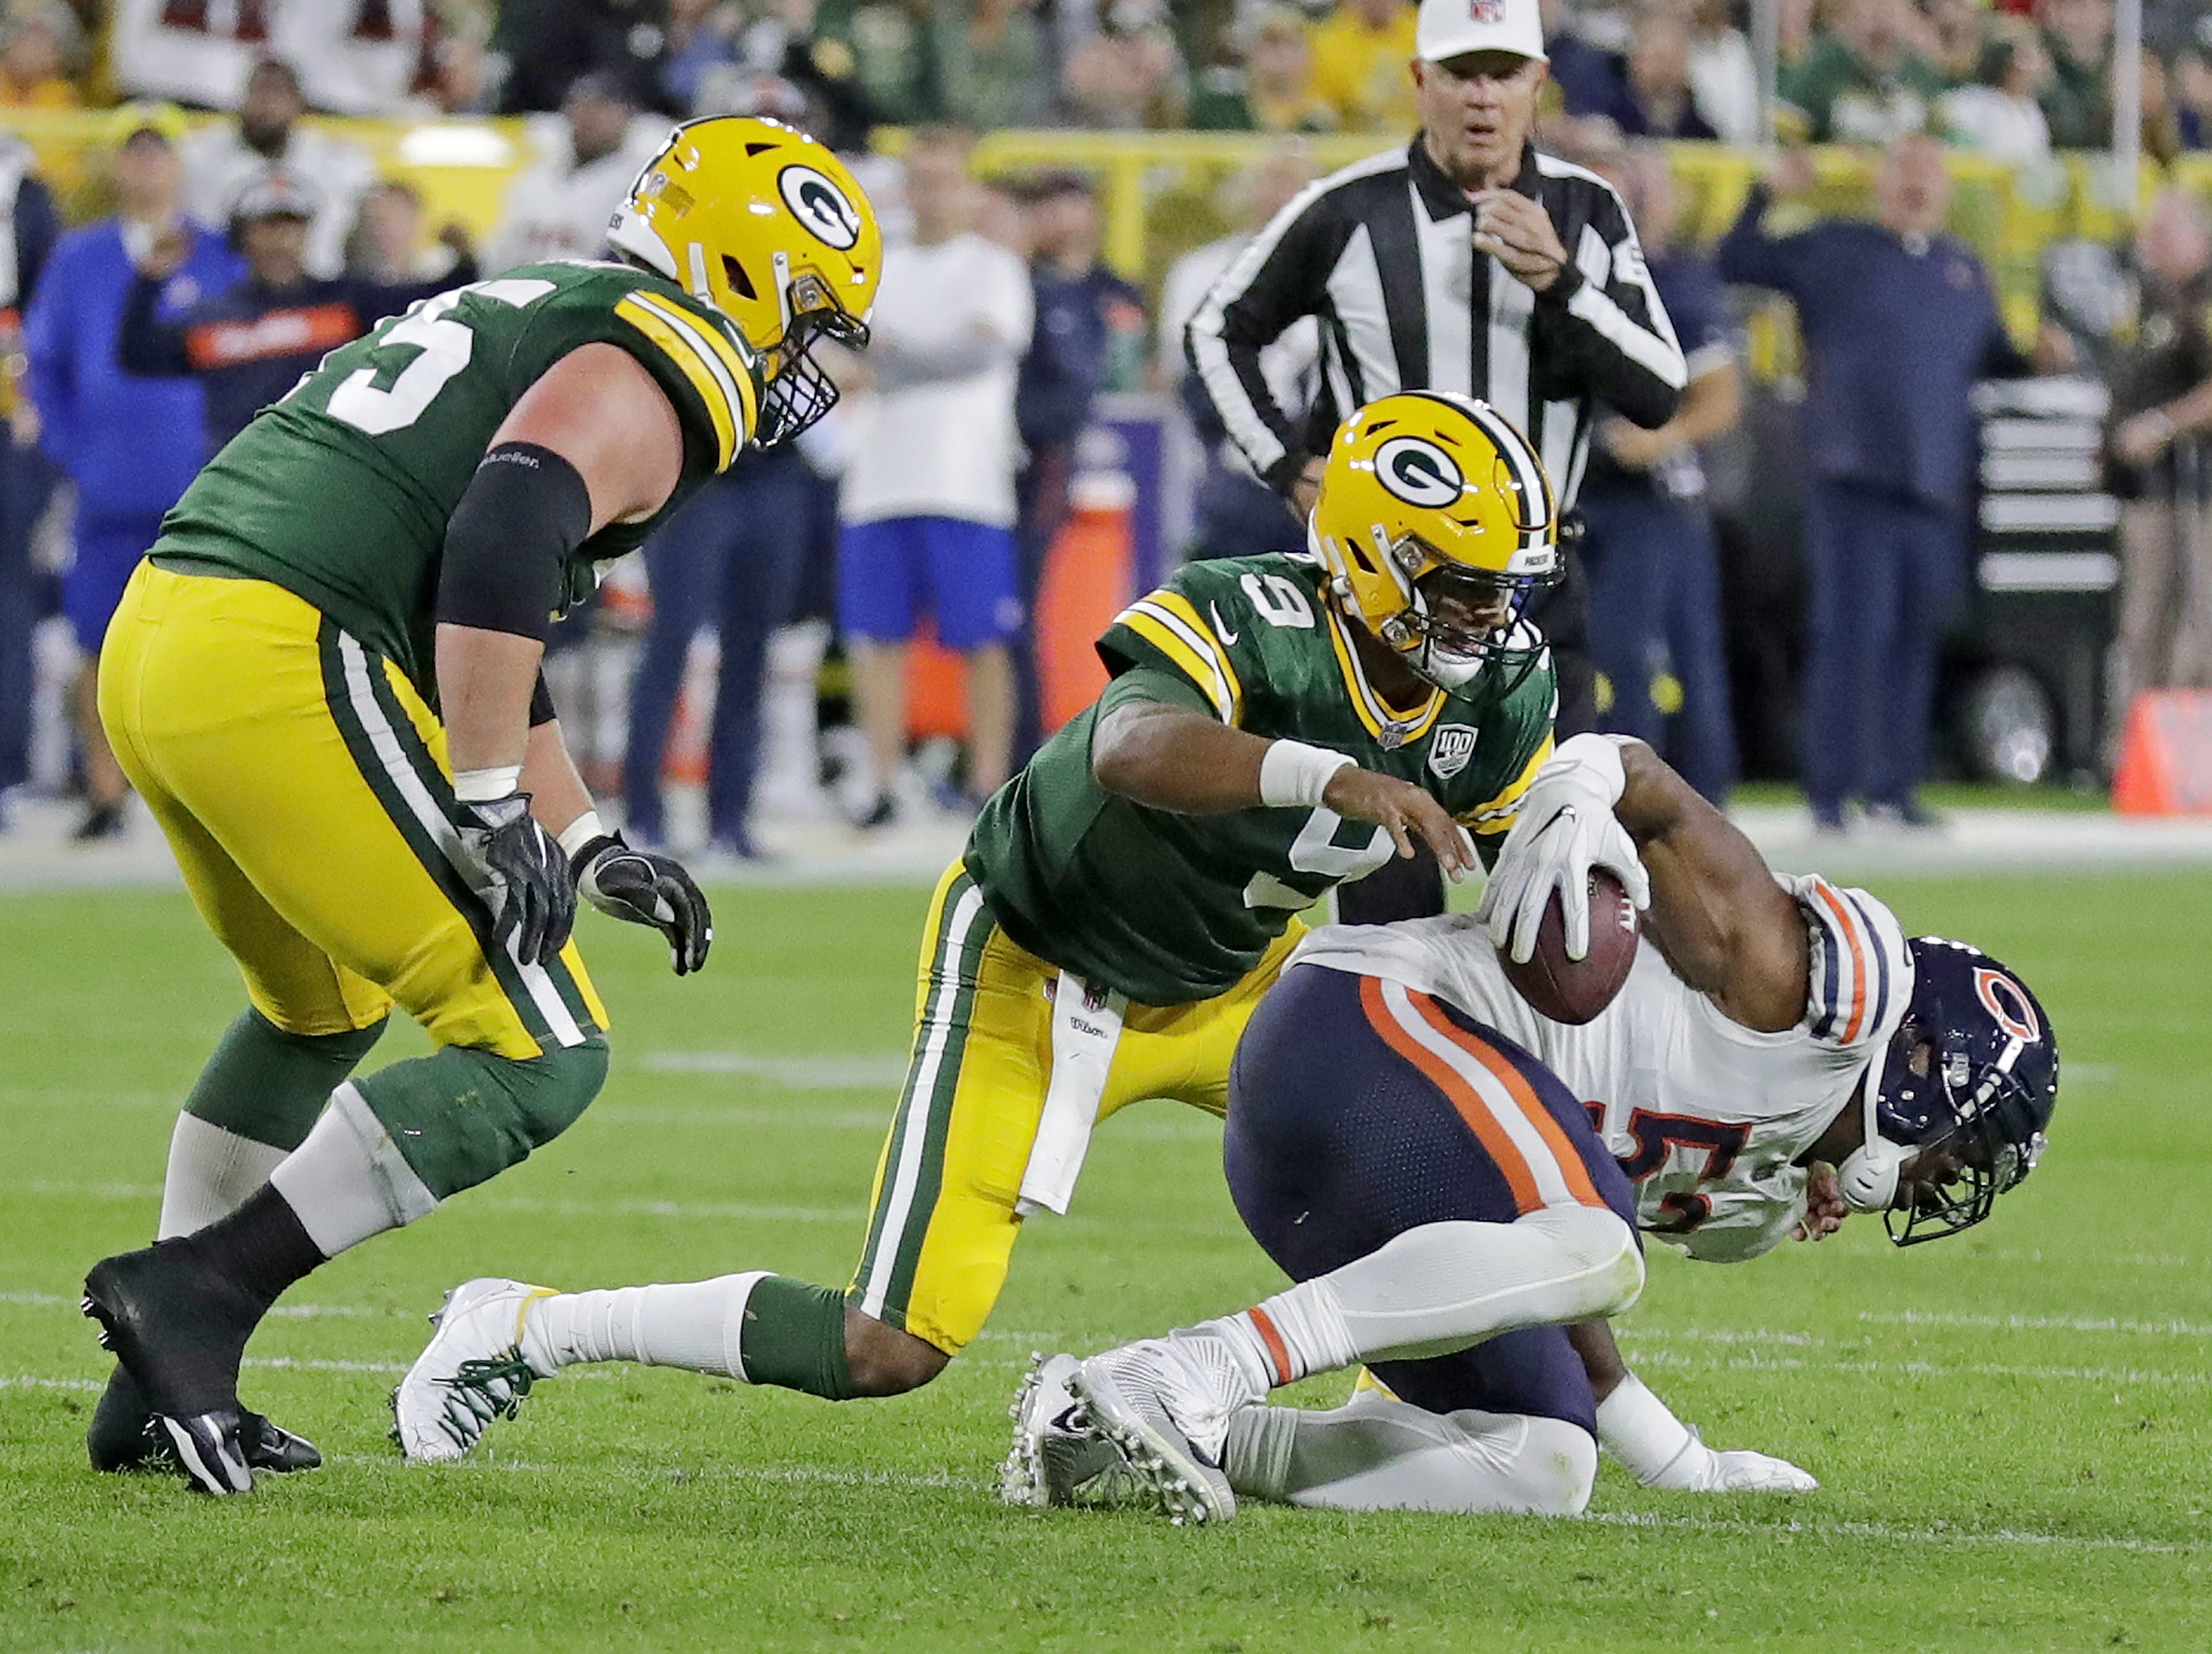 Green Bay Packers quarterback DeShone Kizer (9) loses the ball to linebacker Khalil Mack (52) against the Chicago Bears Sunday, September 9, 2018 at Lambeau Field in Green Bay, Wis.